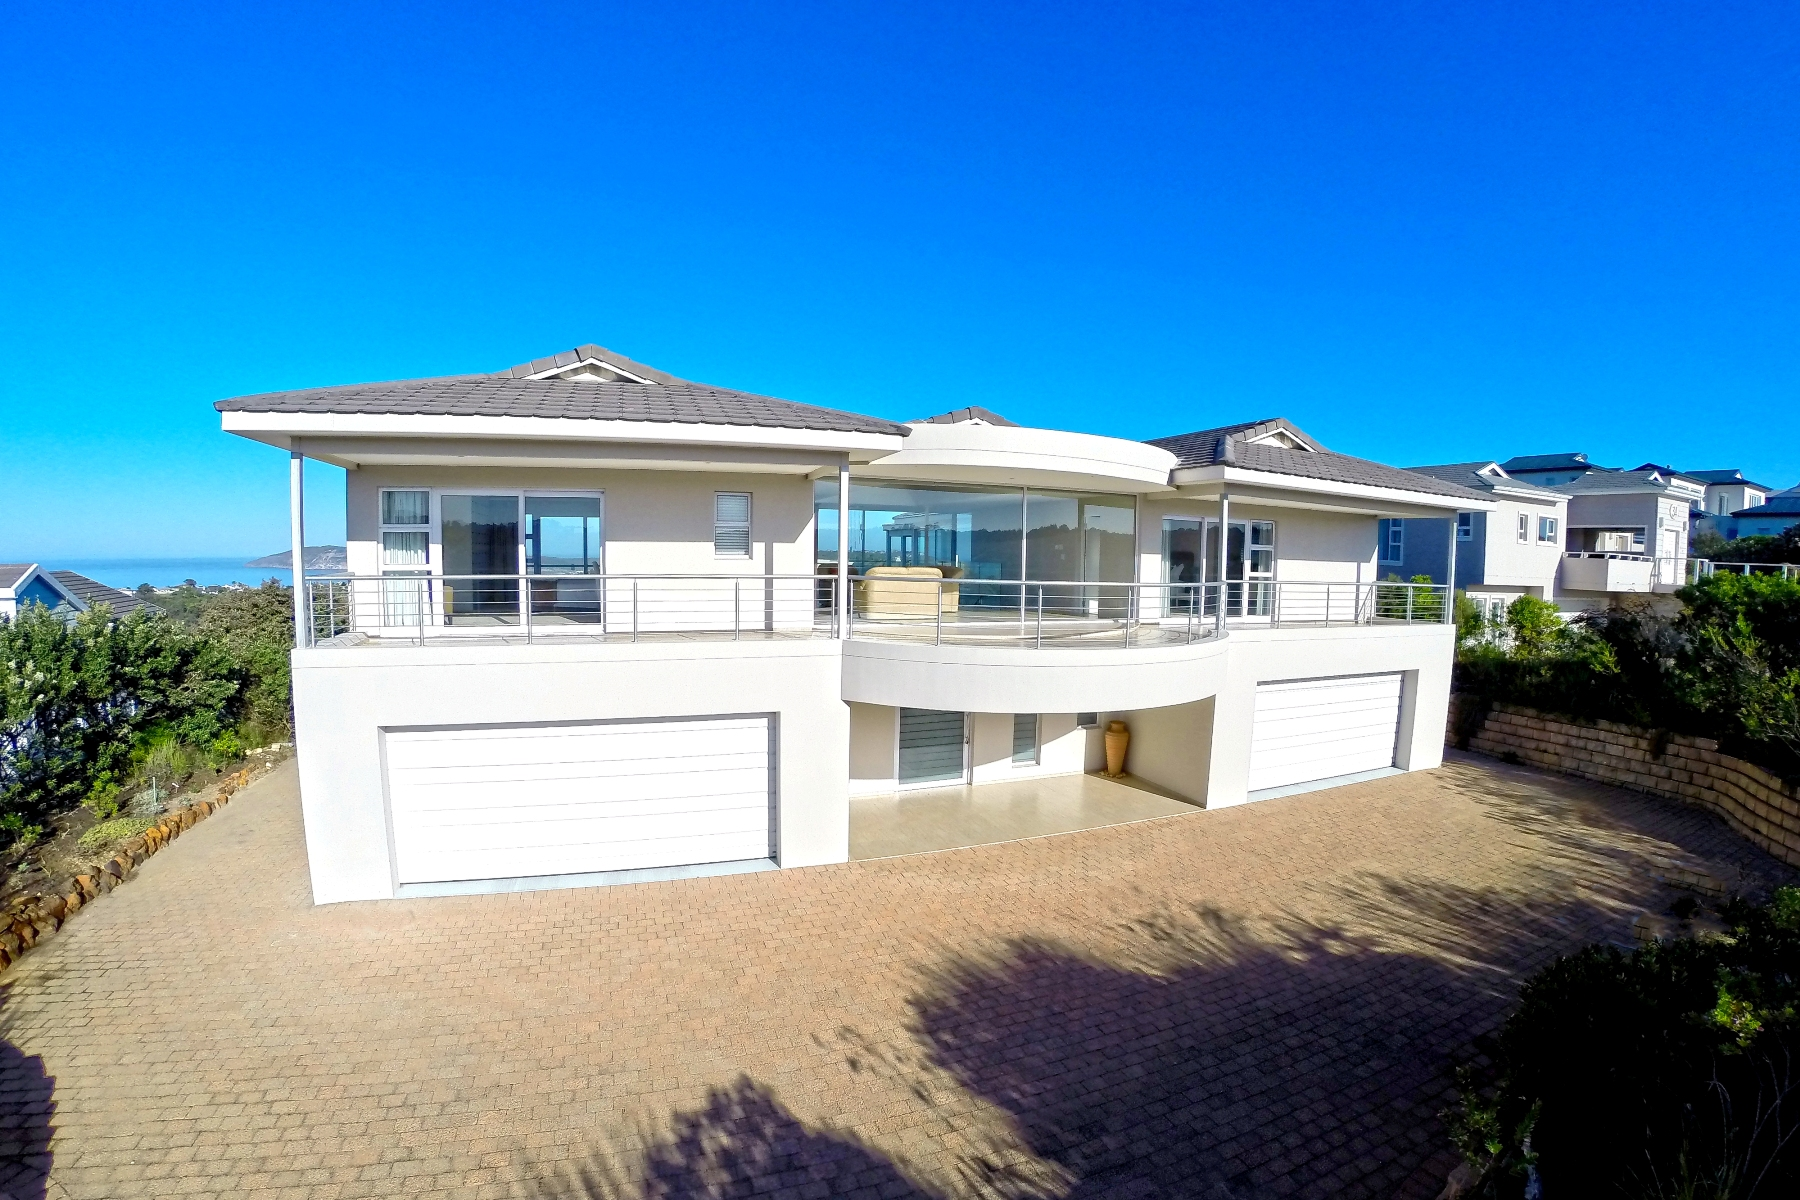 Single Family Home for Sale at On the Ridge Plettenberg Bay, Western Cape, 6600 South Africa